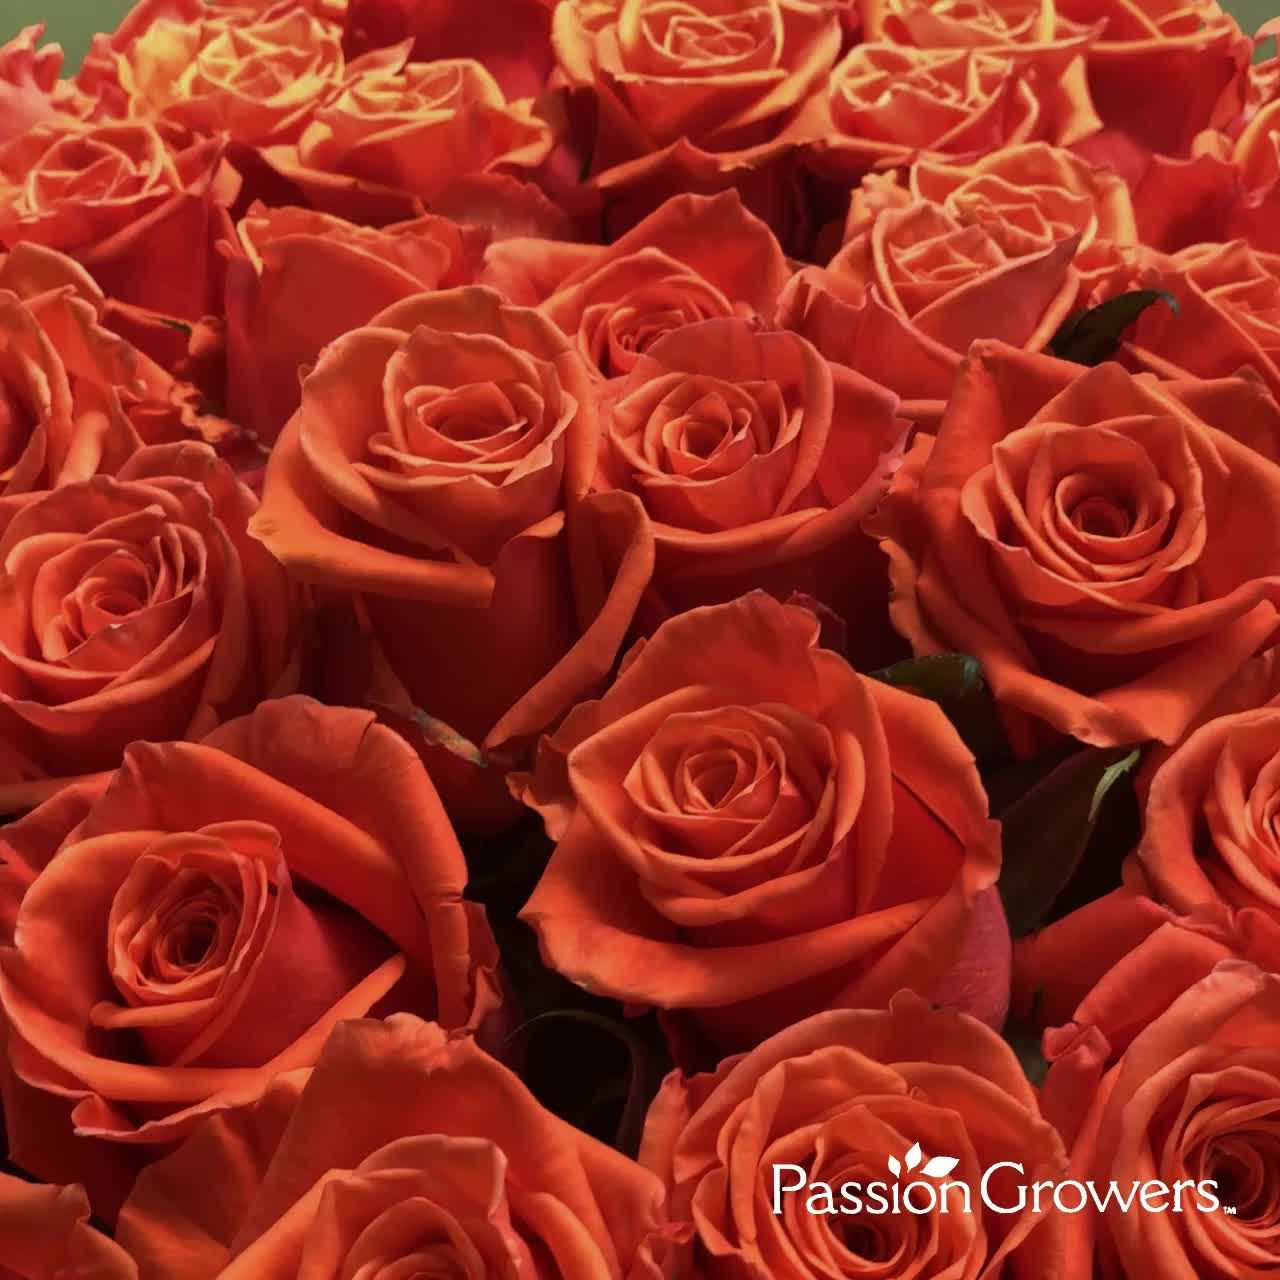 Roses Roses Everywhere! Do you have yours?  . . . . #giveroses #valentinesdayroses #valentinesdayflowers #rose #rosequote #passionroses #passiongrowers #flowerstagram #flowers #roses #flower